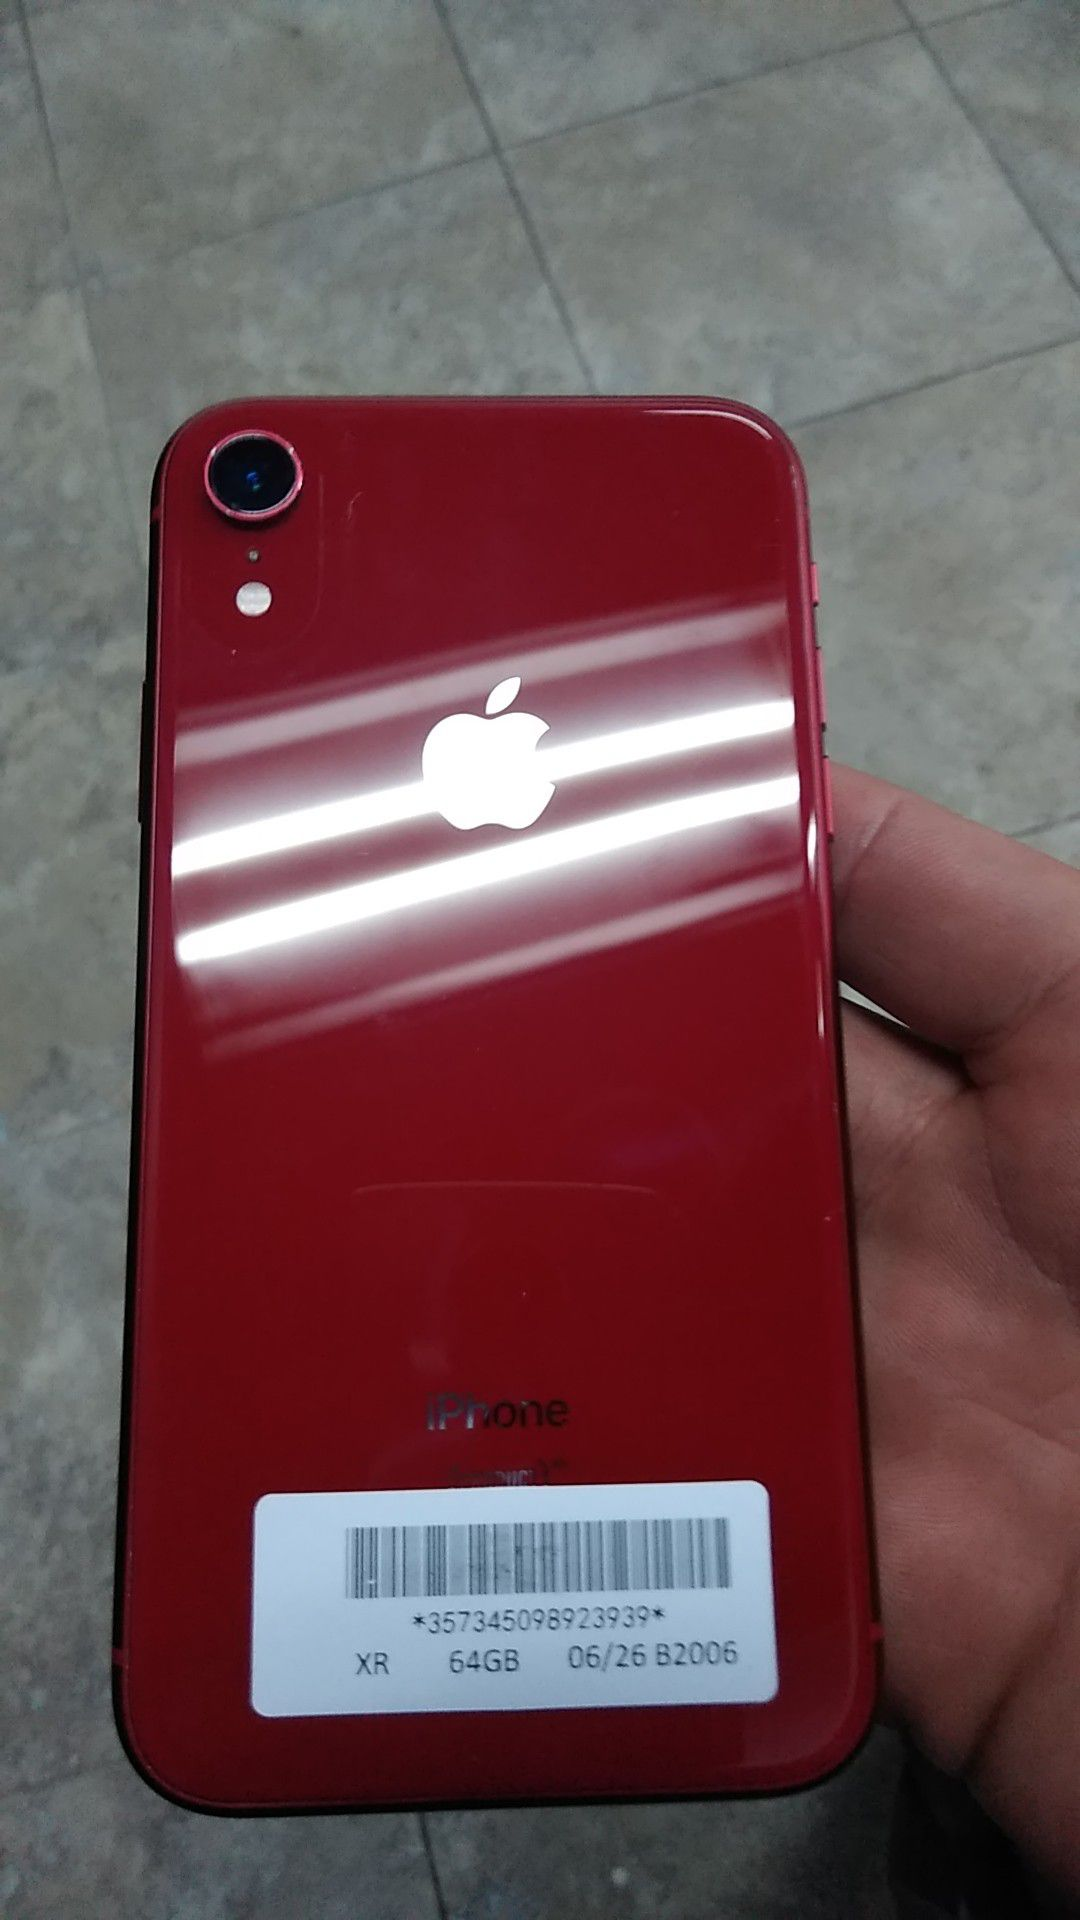 🔥 IPHONE XR 64GB (No Face ID) Factory Unlocked🔥